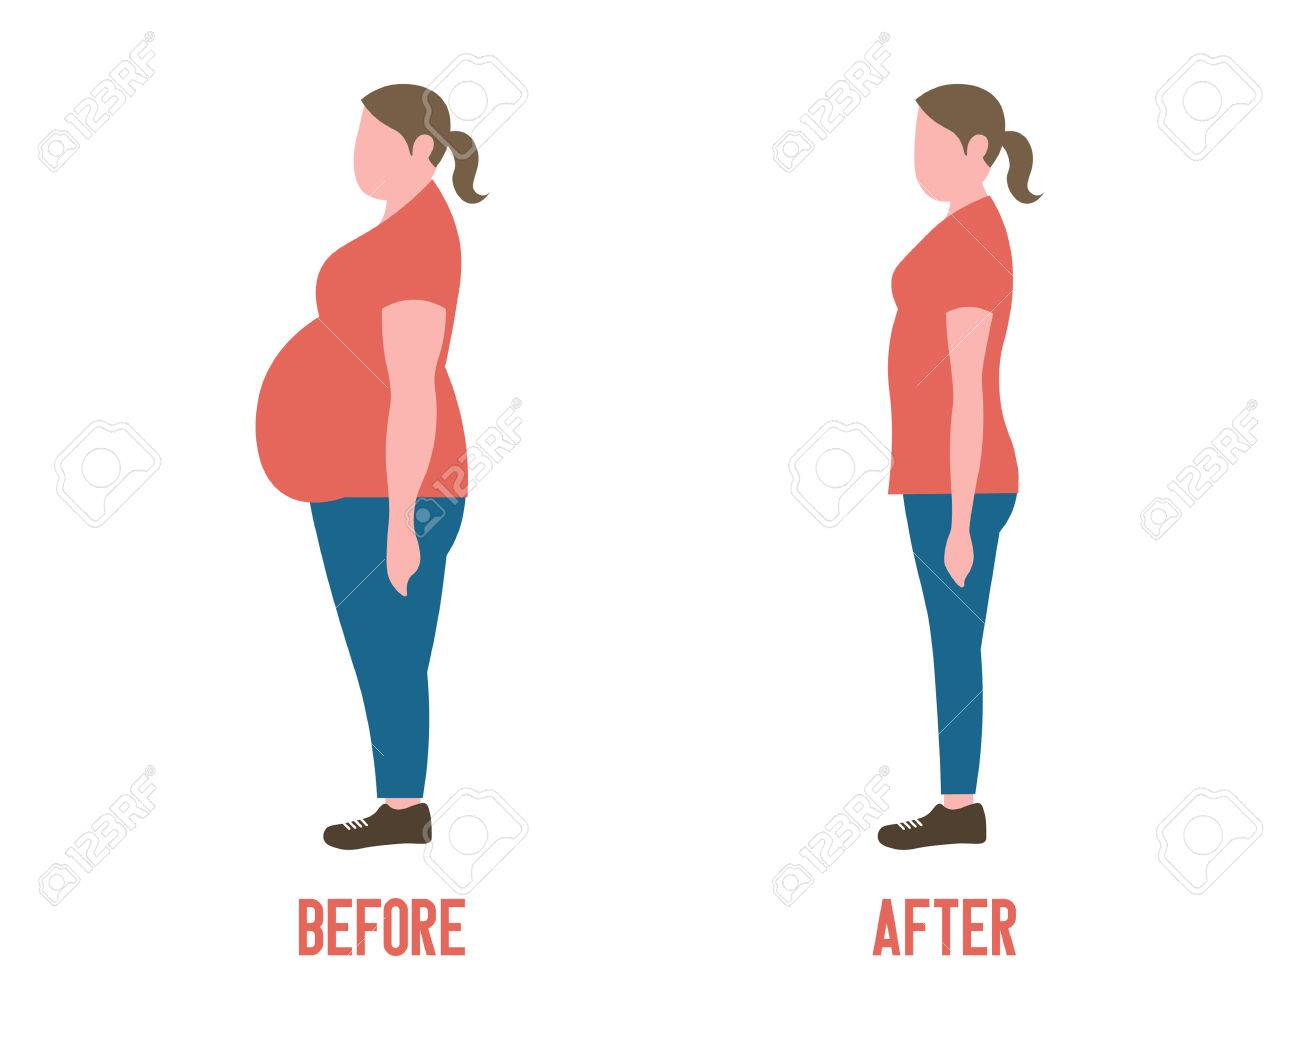 After women before and 110 Before